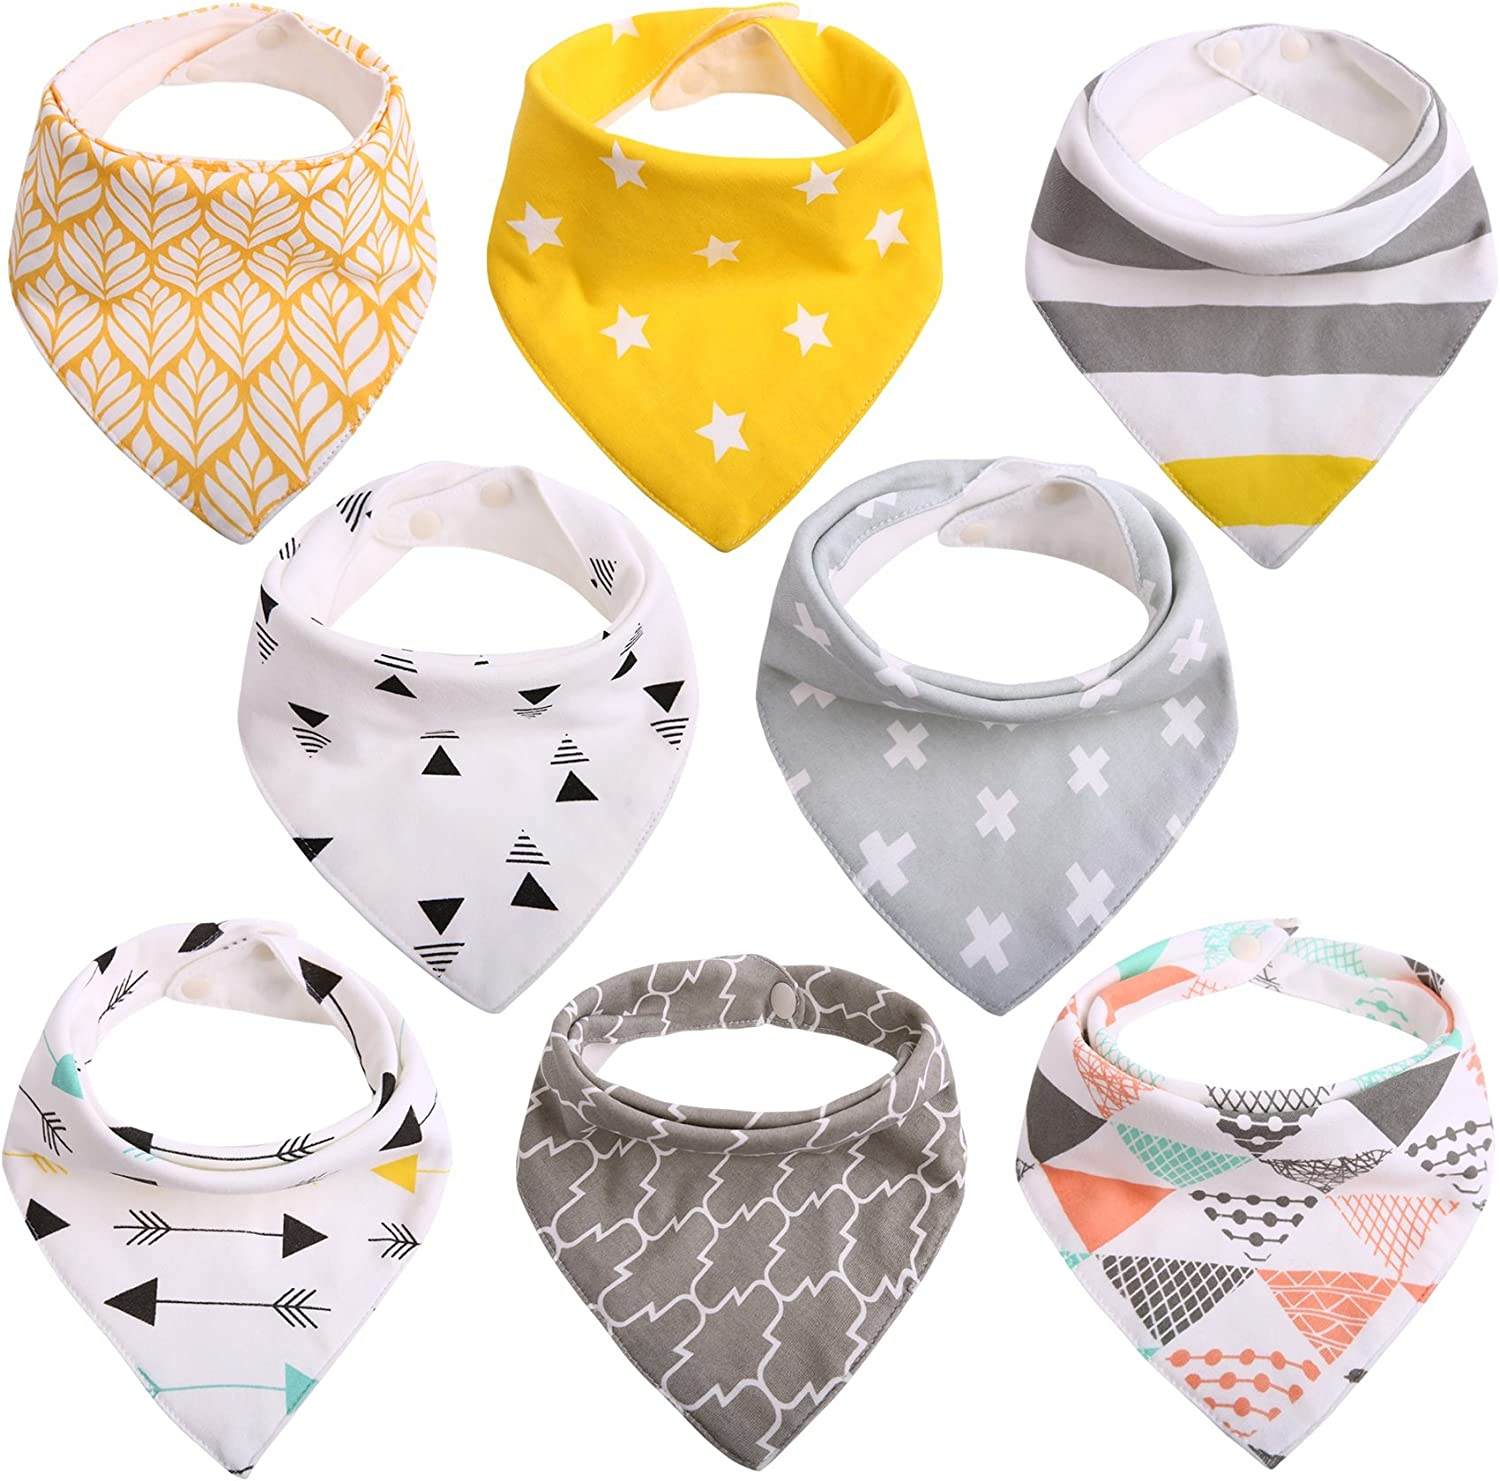 BABY DUCK PATTERN 2 PACK OF BANDANA BIBS New